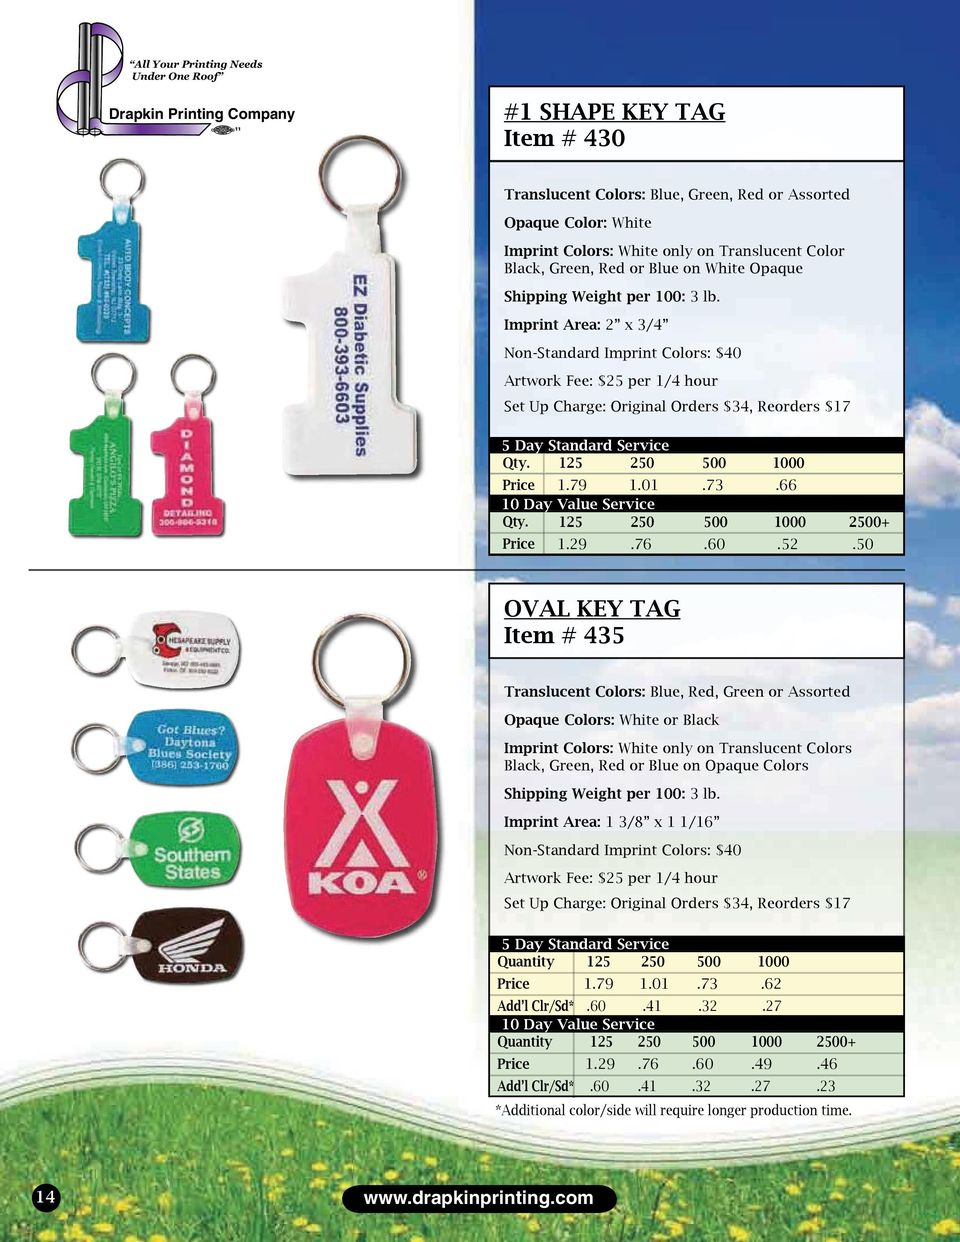 50 OVAL KEY TAG Item # 435 Translucent Colors: Blue, Red, Green or Assorted Opaque Colors: White or Black Imprint Colors: White only on Translucent Colors Black, Green, Red or Blue on Opaque Colors